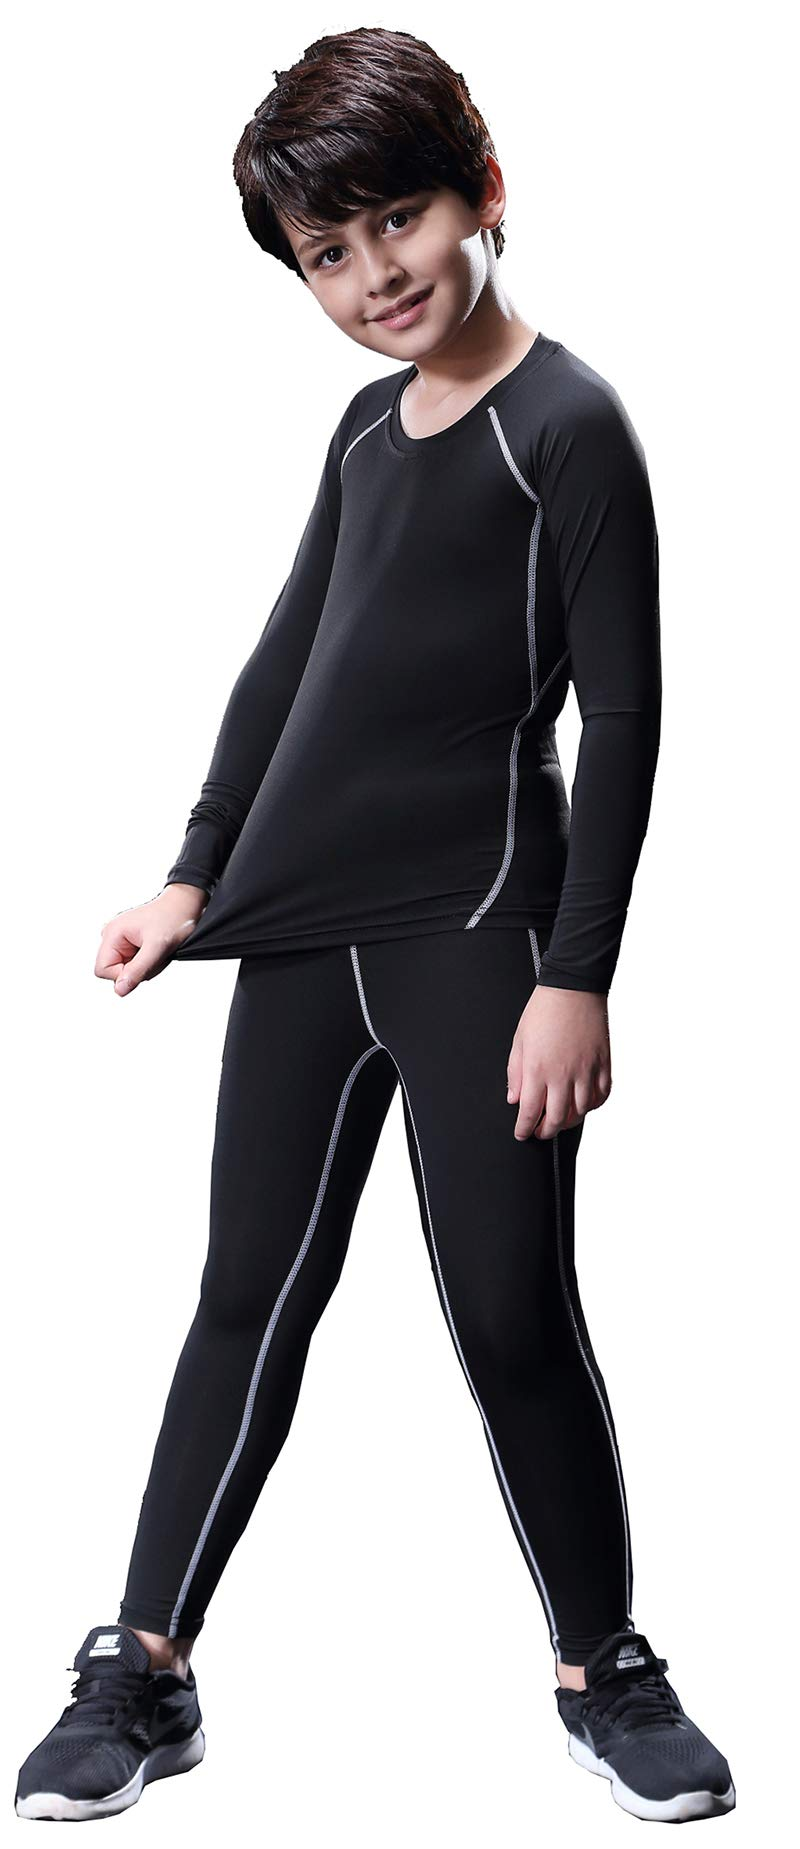 Boy's Thermal Underwear Set Long John Skin Base Layer Tops and Bottom with Fleece Lined by Diyo